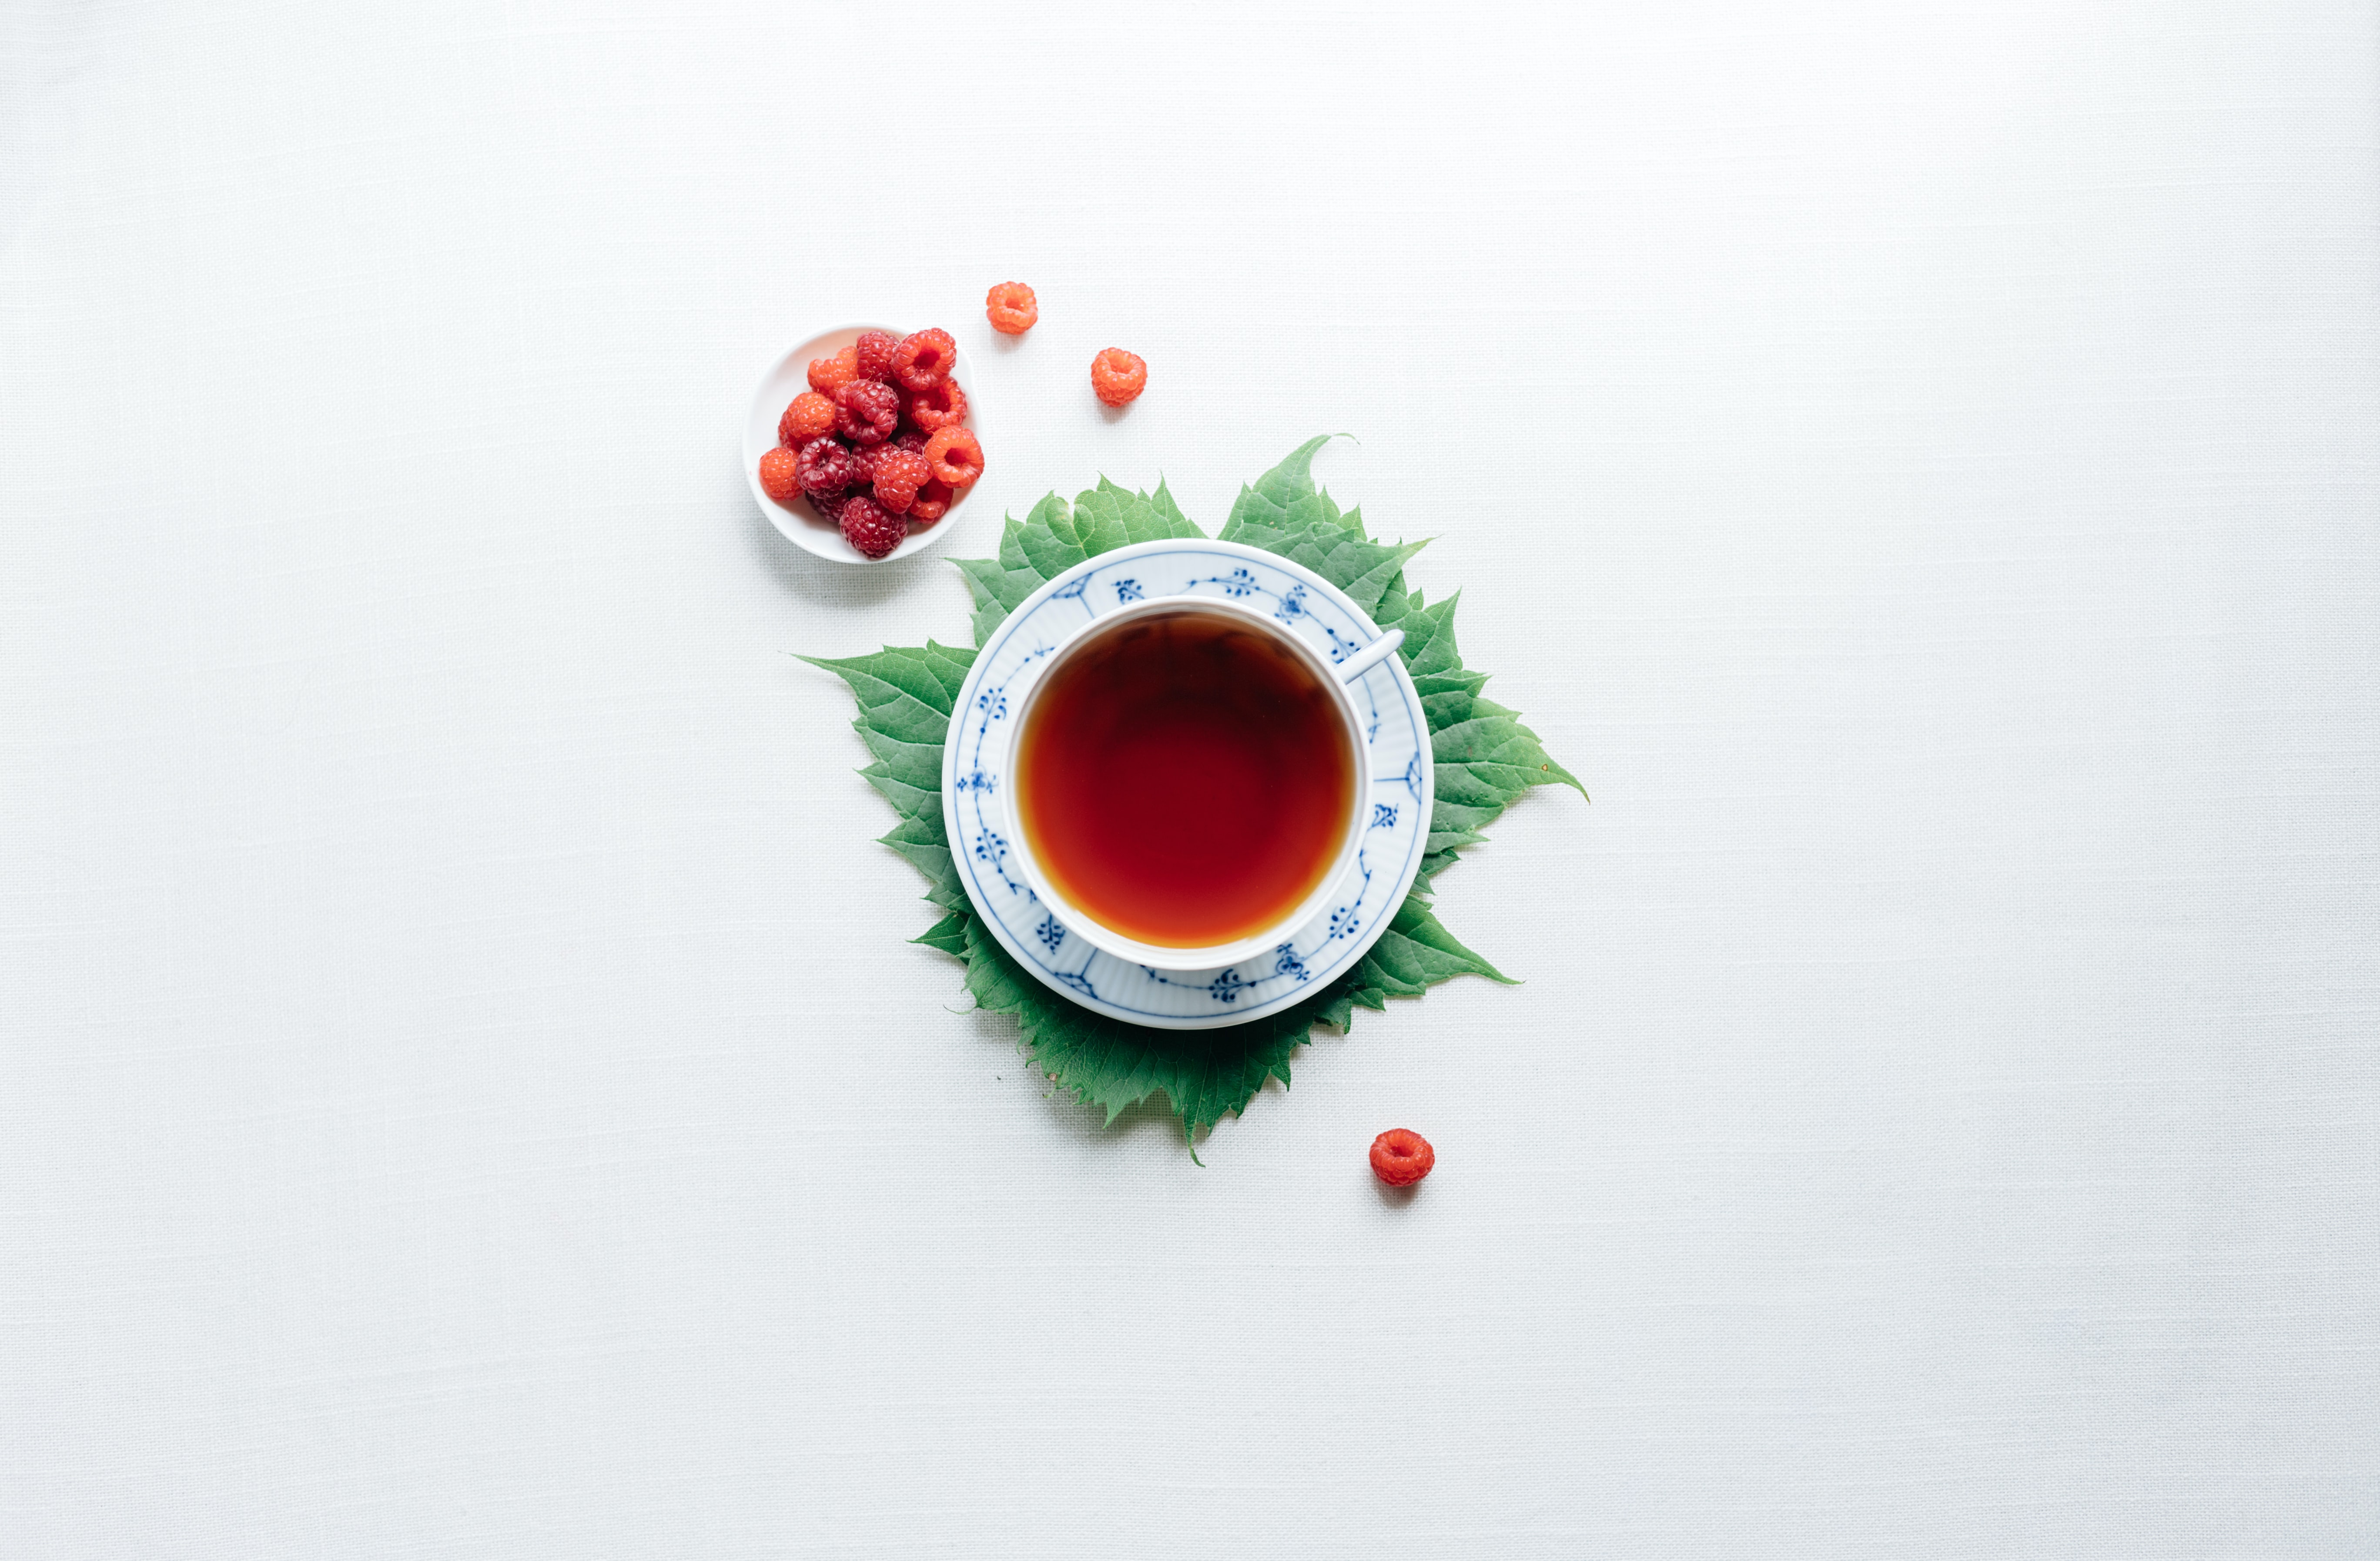 round white cup with saucer filled with red liquid